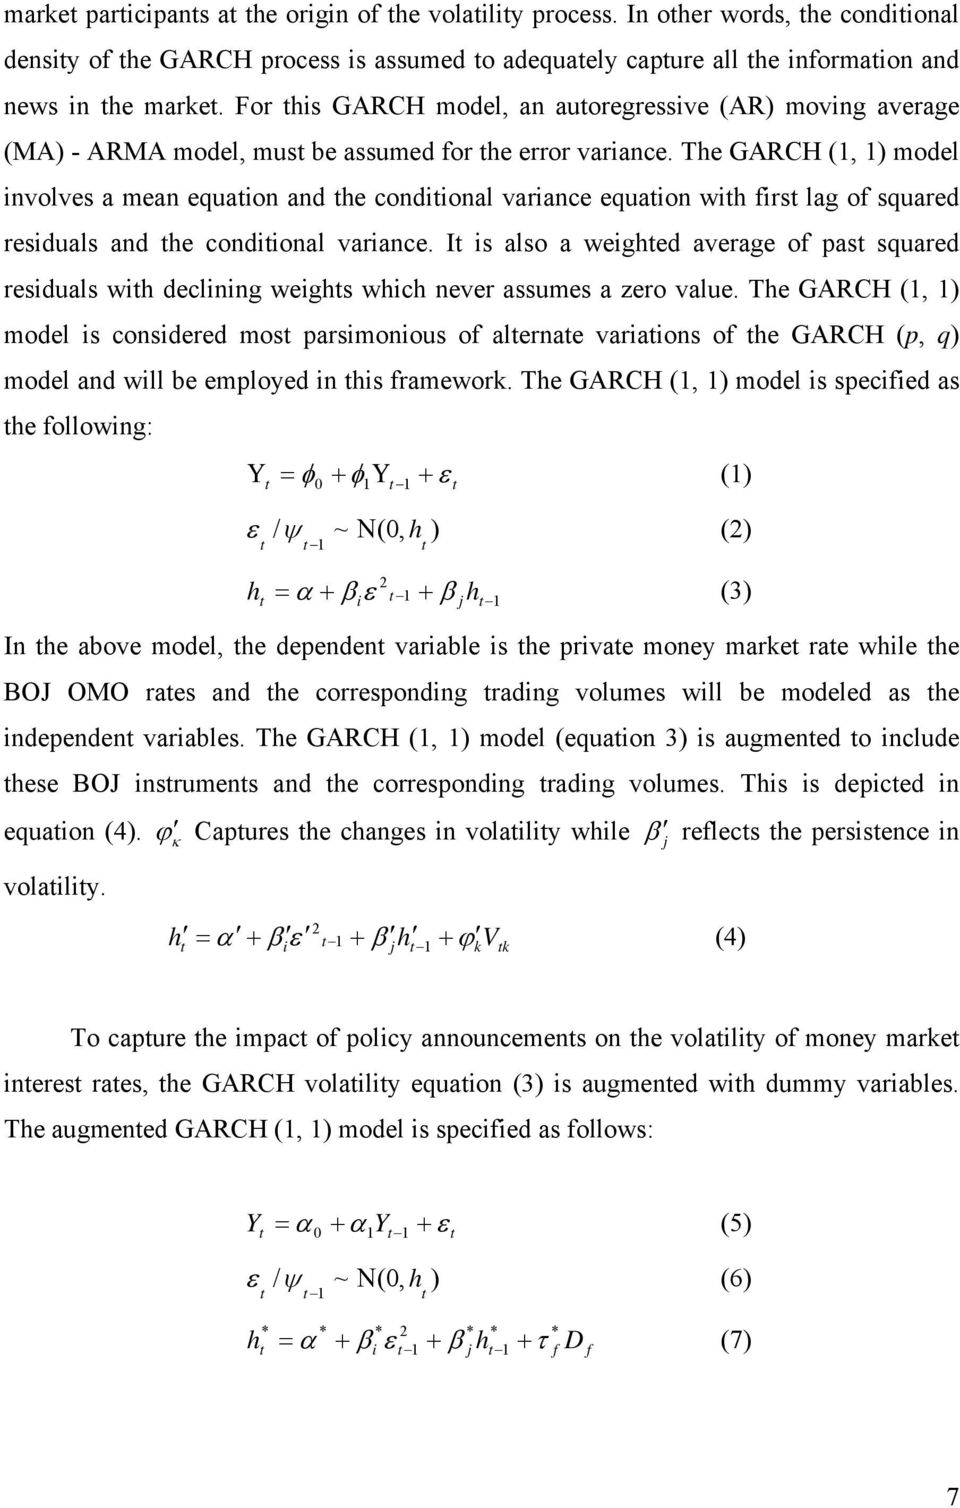 The GARCH (1, 1) model involves a mean equaion and he condiional variance equaion wih firs lag of squared residuals and he condiional variance.